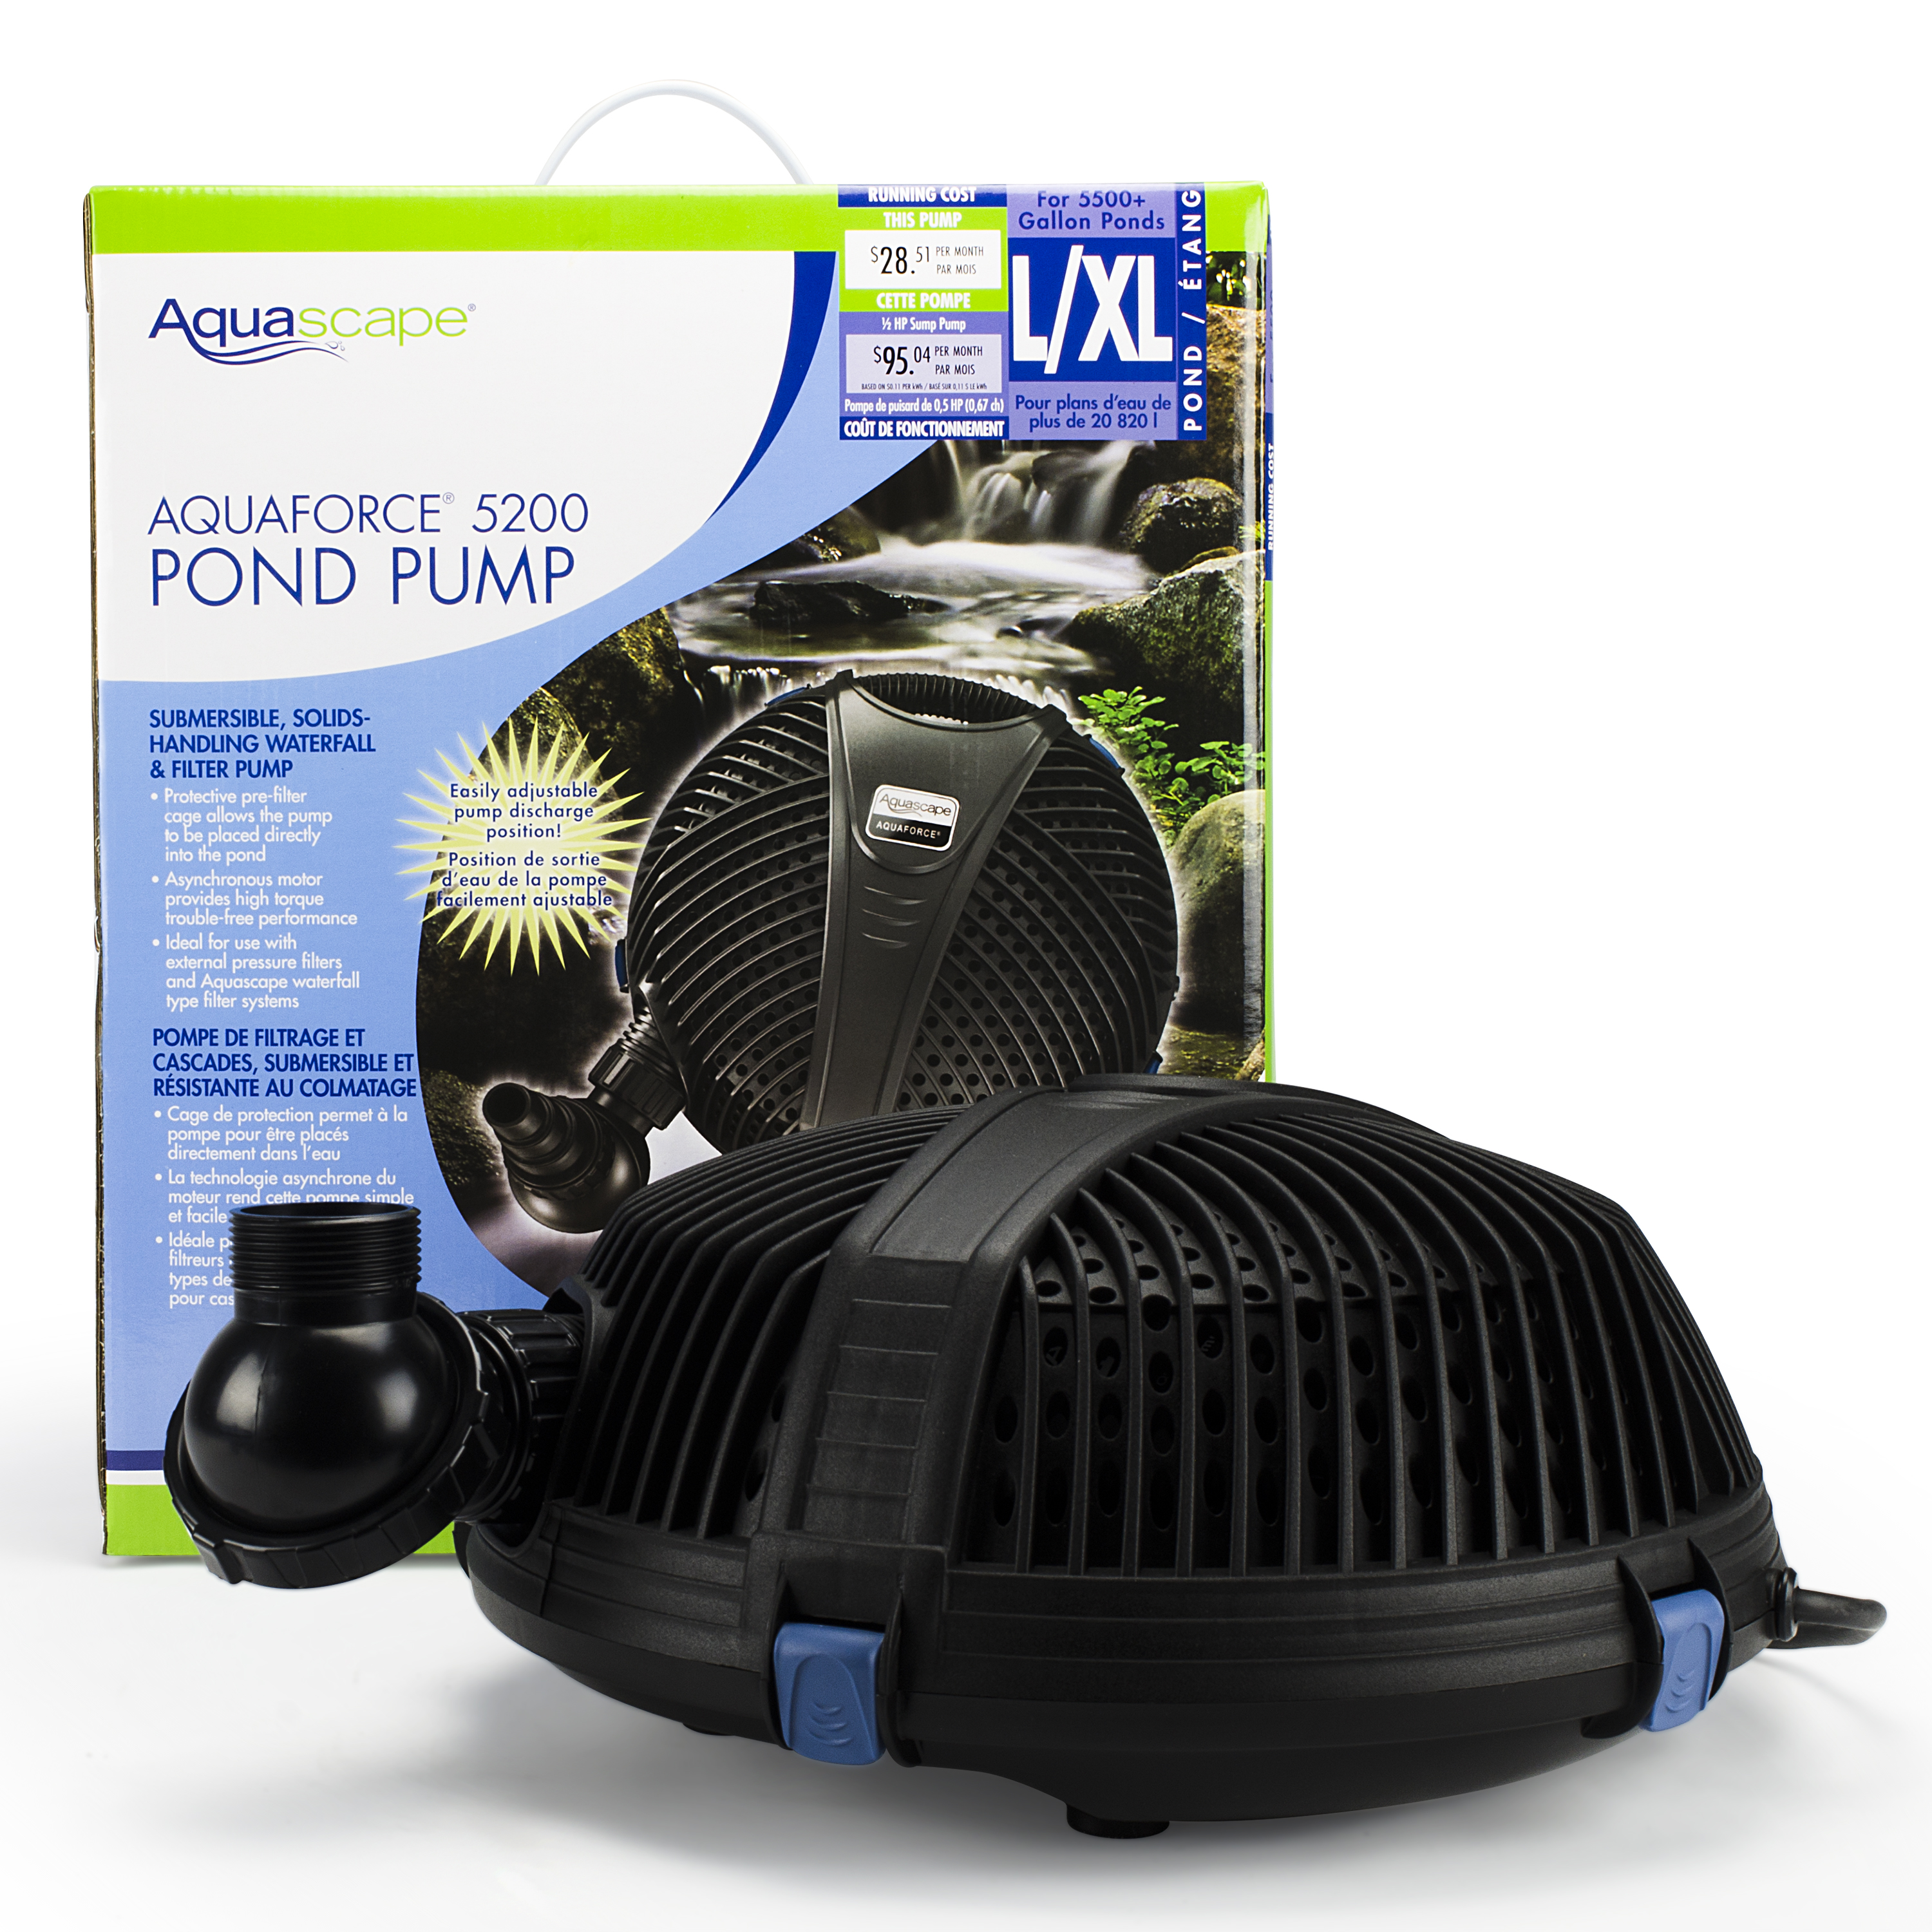 AquaForce 5200 Solids-Handling Pond Pump